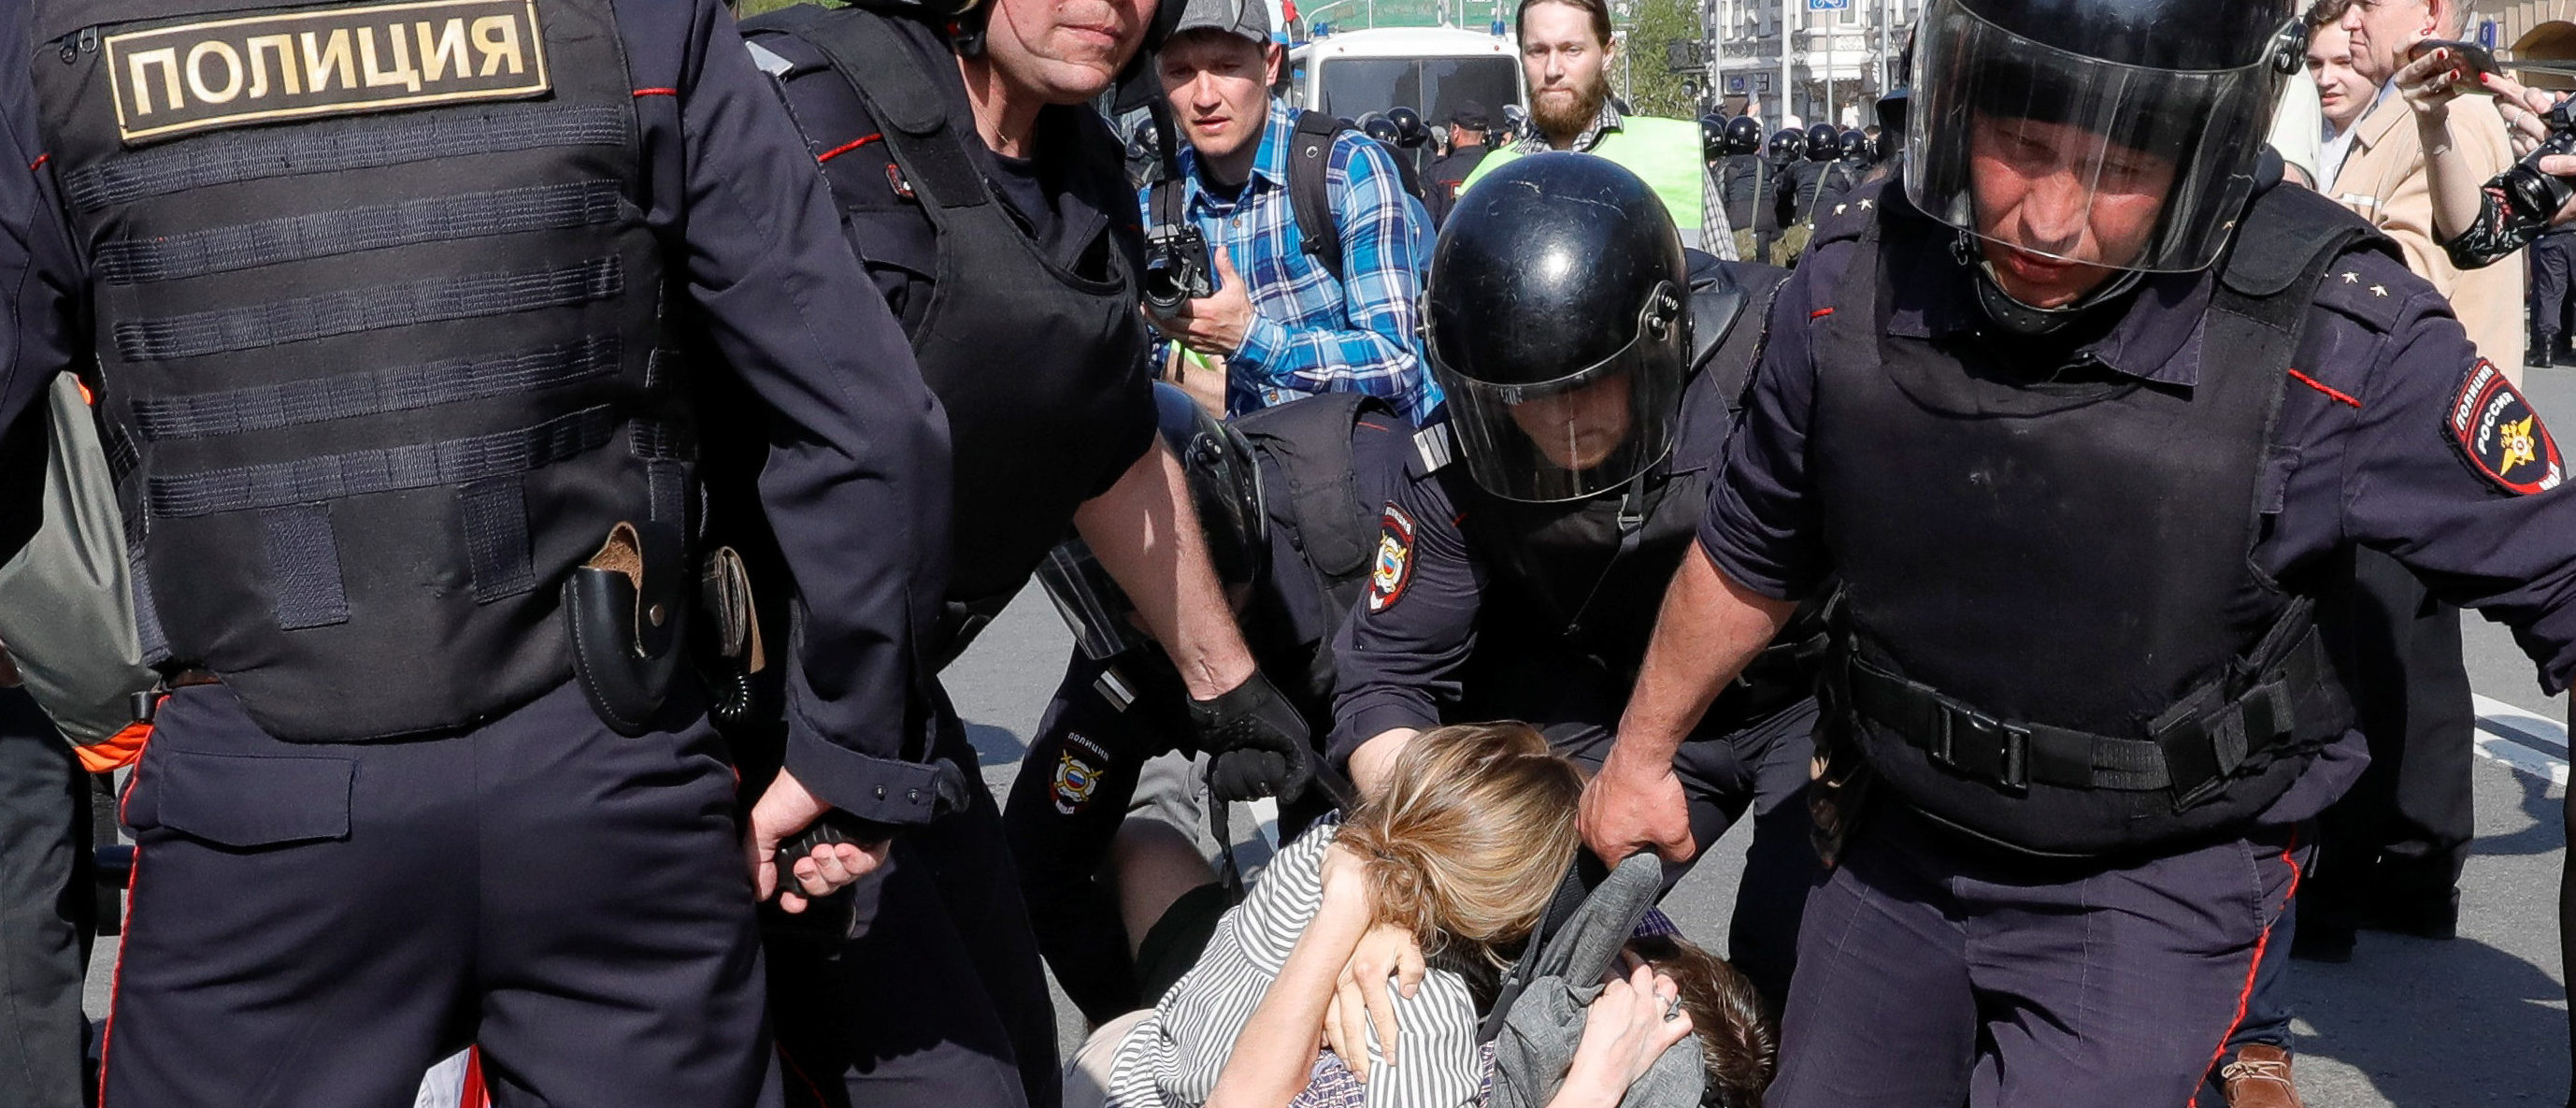 Policemen detain opposition supporters during a protest ahead of President Vladimir Putin's inauguration ceremony, Moscow, Russia May 5, 2018. REUTERS/Tatyana Makeyeva - RC13FDD53A70